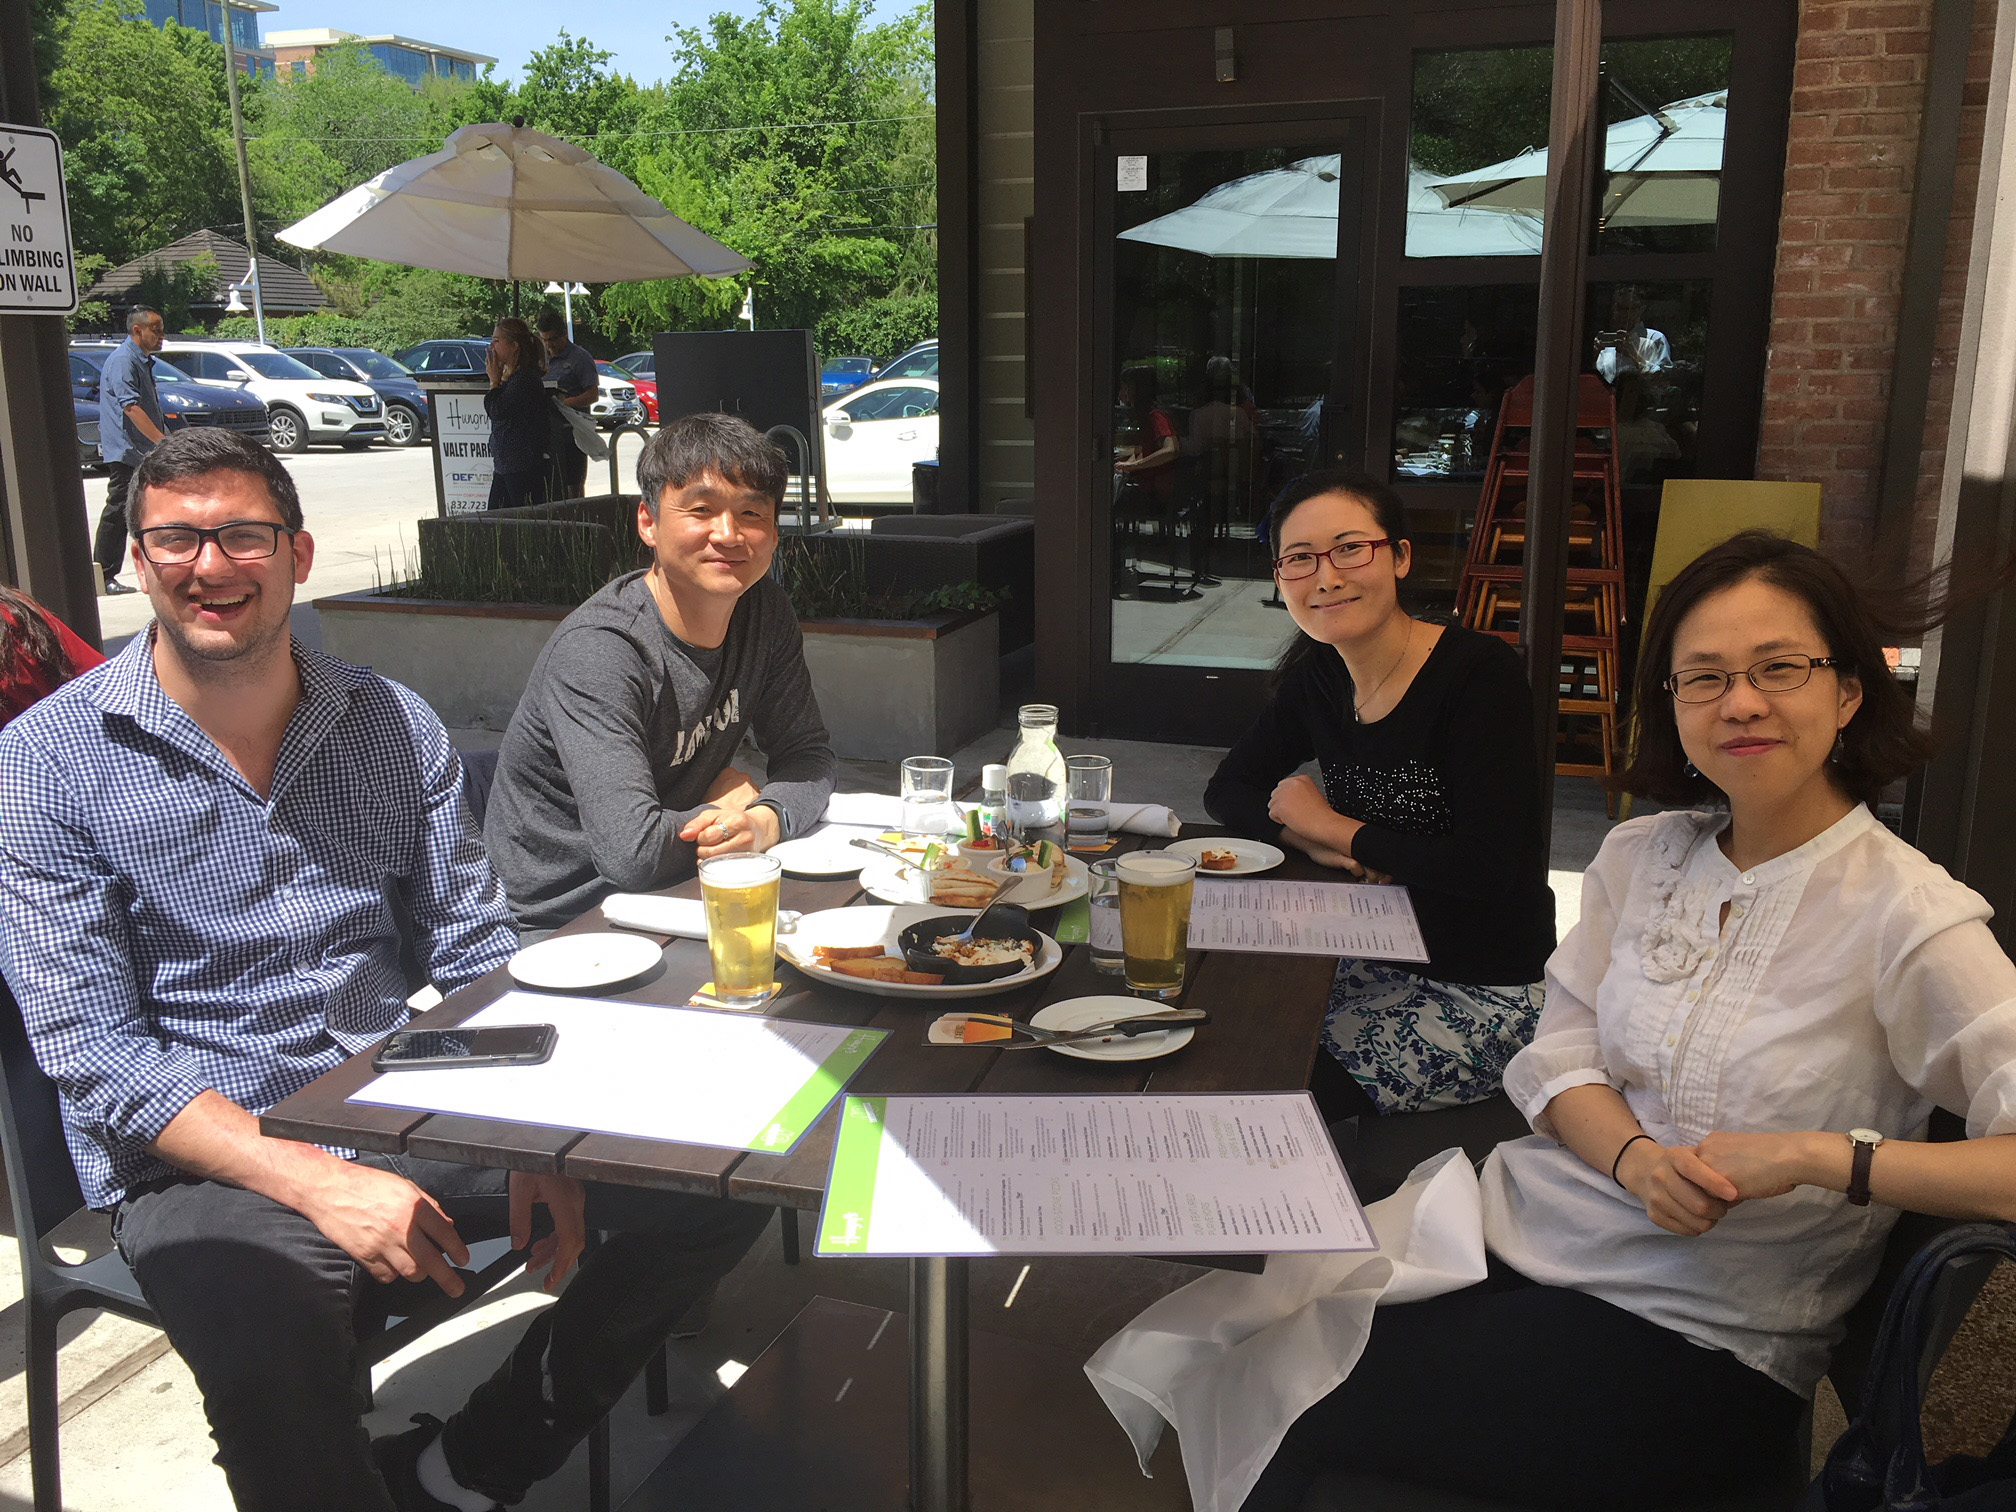 Lunch at Hungry at April 2018